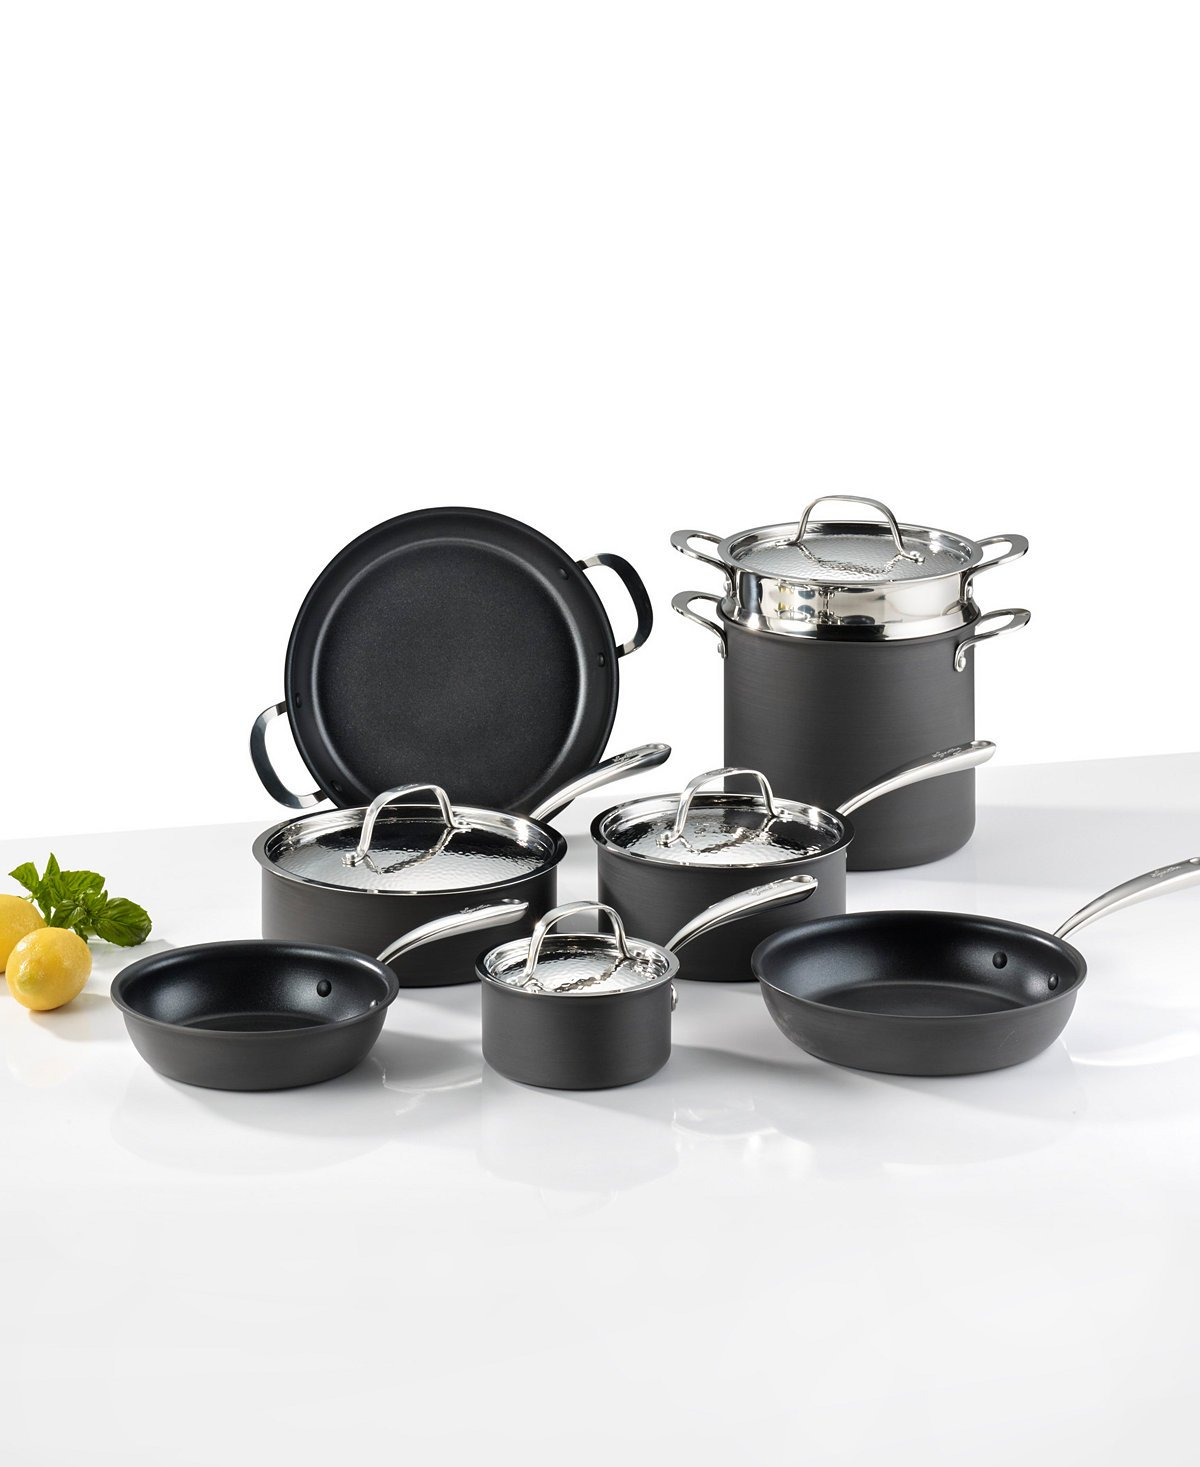 Lagostina Nera Hard Anodized Nonstick 12-Pc. Cookware Set (Impeccable Italian Cookware) by Lagostina